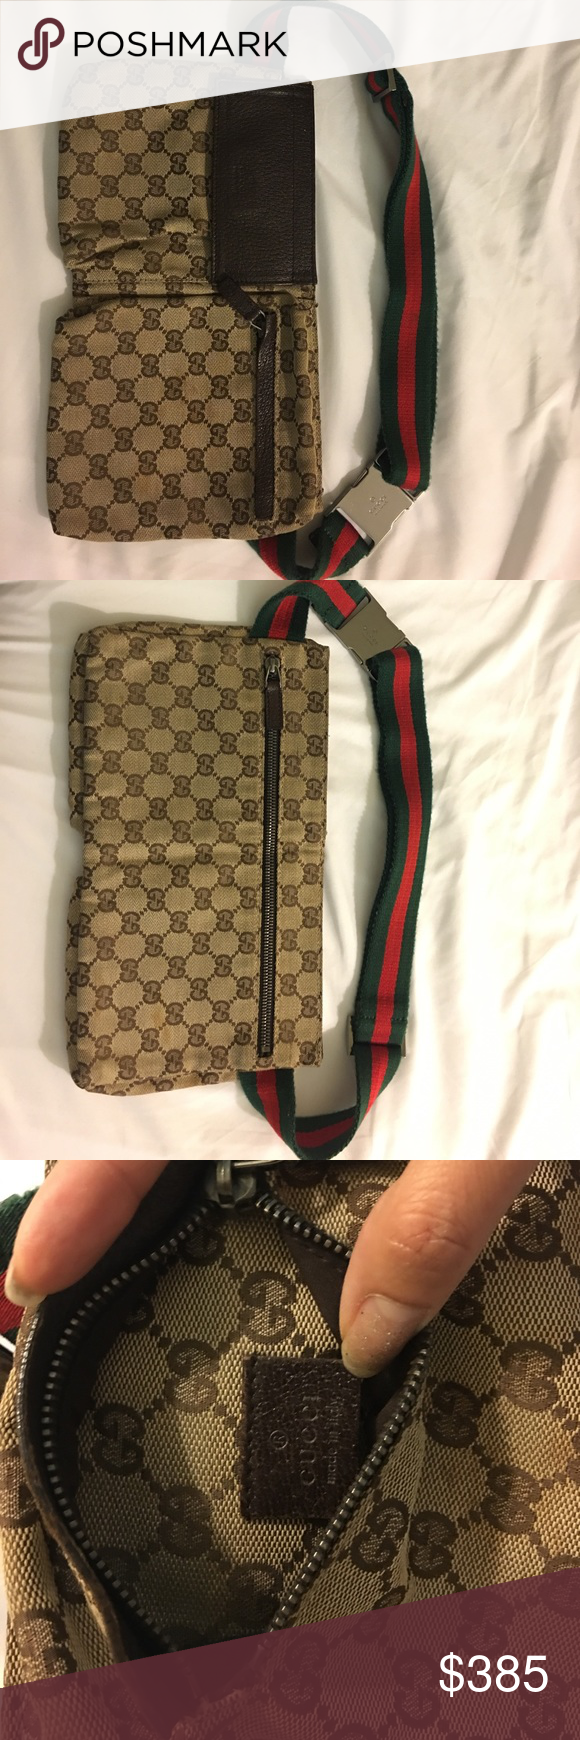 593ee1ecc2f6 GUCCI Authentic Waist PouchBelt Fanny Pack Vintage Pre owned GUCCI Sherry  Webbing Waist Pouch Bumbag Belt